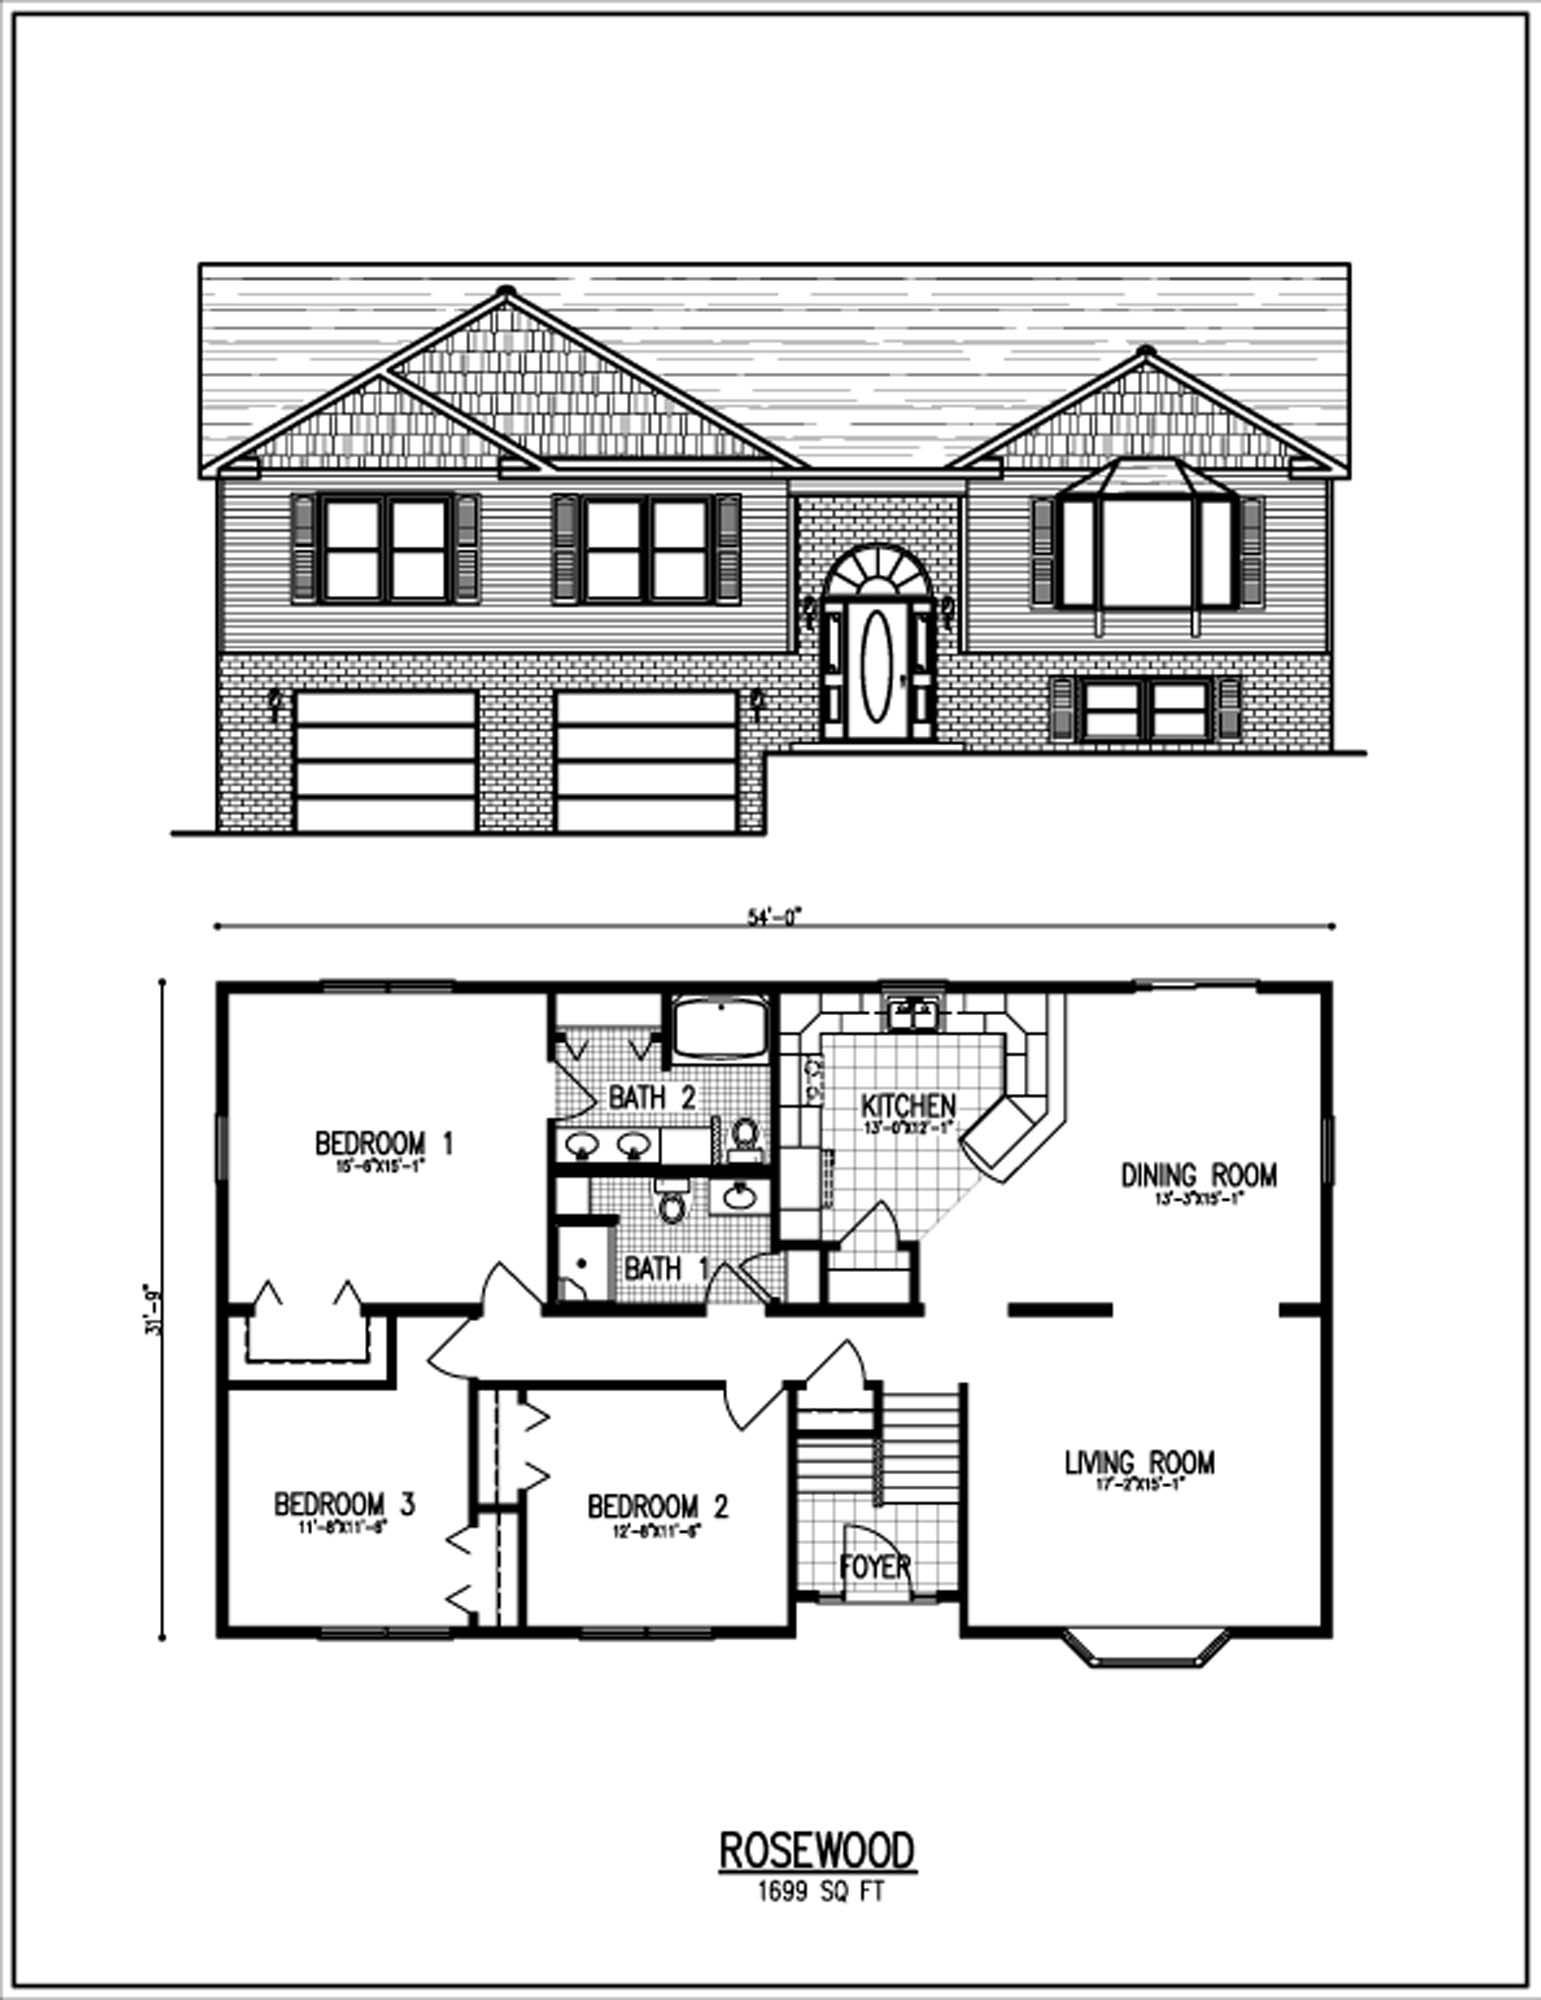 best raised ranch house plans, bi level raised ranch, brick ... on raised mansion house plans, southern house plans, raised small house plans, backsplit house plans, townhouse house plans, raised camp house plans, raised beach house plans, raised townhouse plans, raised piling house plans, 3 storey house plans, stacked house plans, cape cod style beach house plans, commercial house plans, cottage house plans, raised acadian house plans, contemporary house plans, condo house plans, apartment house plans, raised garage plans, ranch house plans,